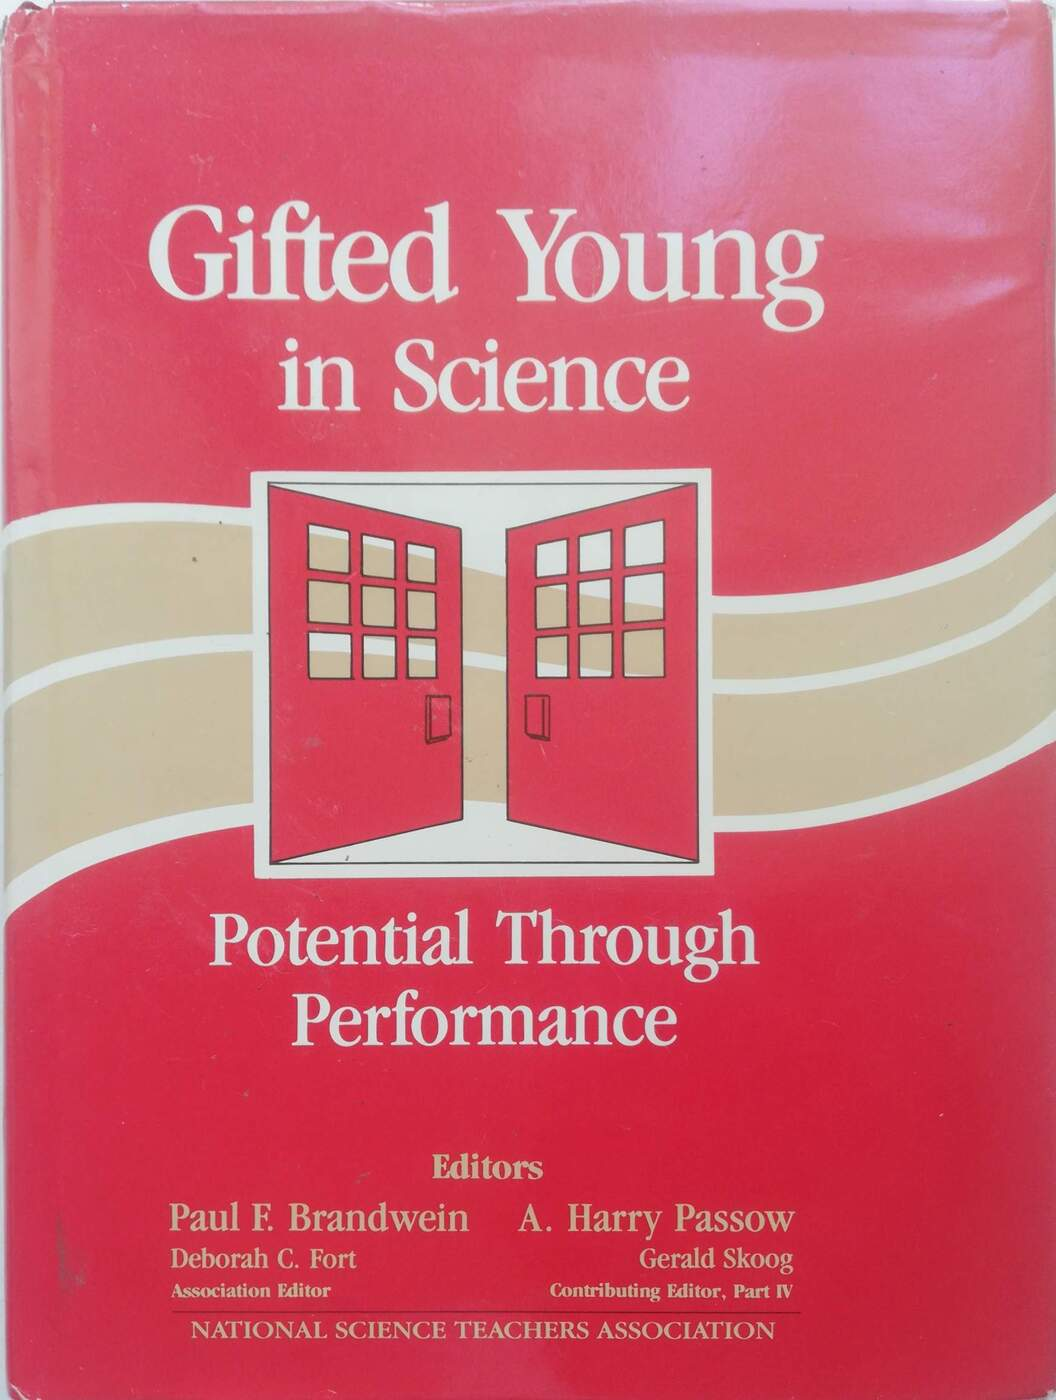 Paul F. Brandwein Gifted Young in Science: Potential Through Performance